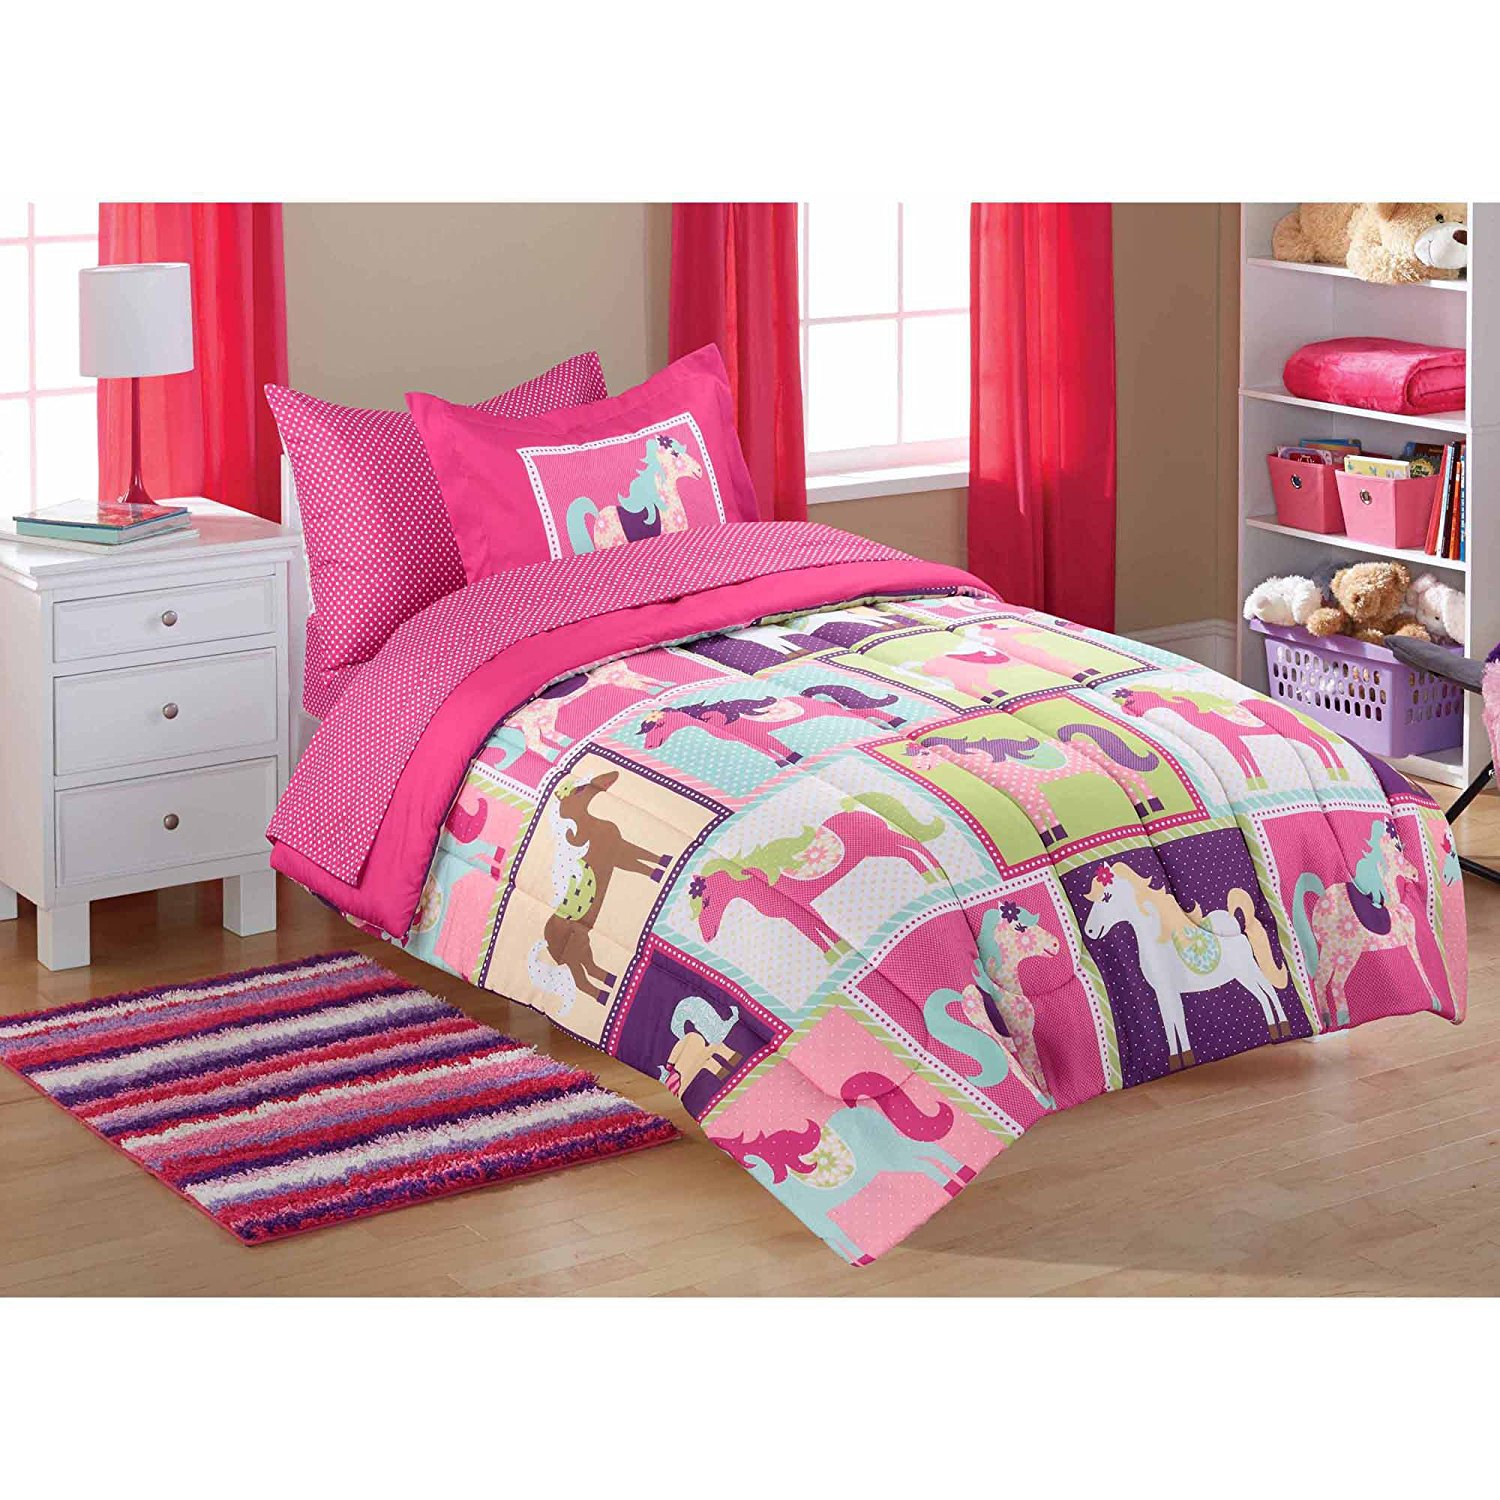 Boys Western Bedding | Boys Cotton Duvet Covers | Horse Bedding for Girls